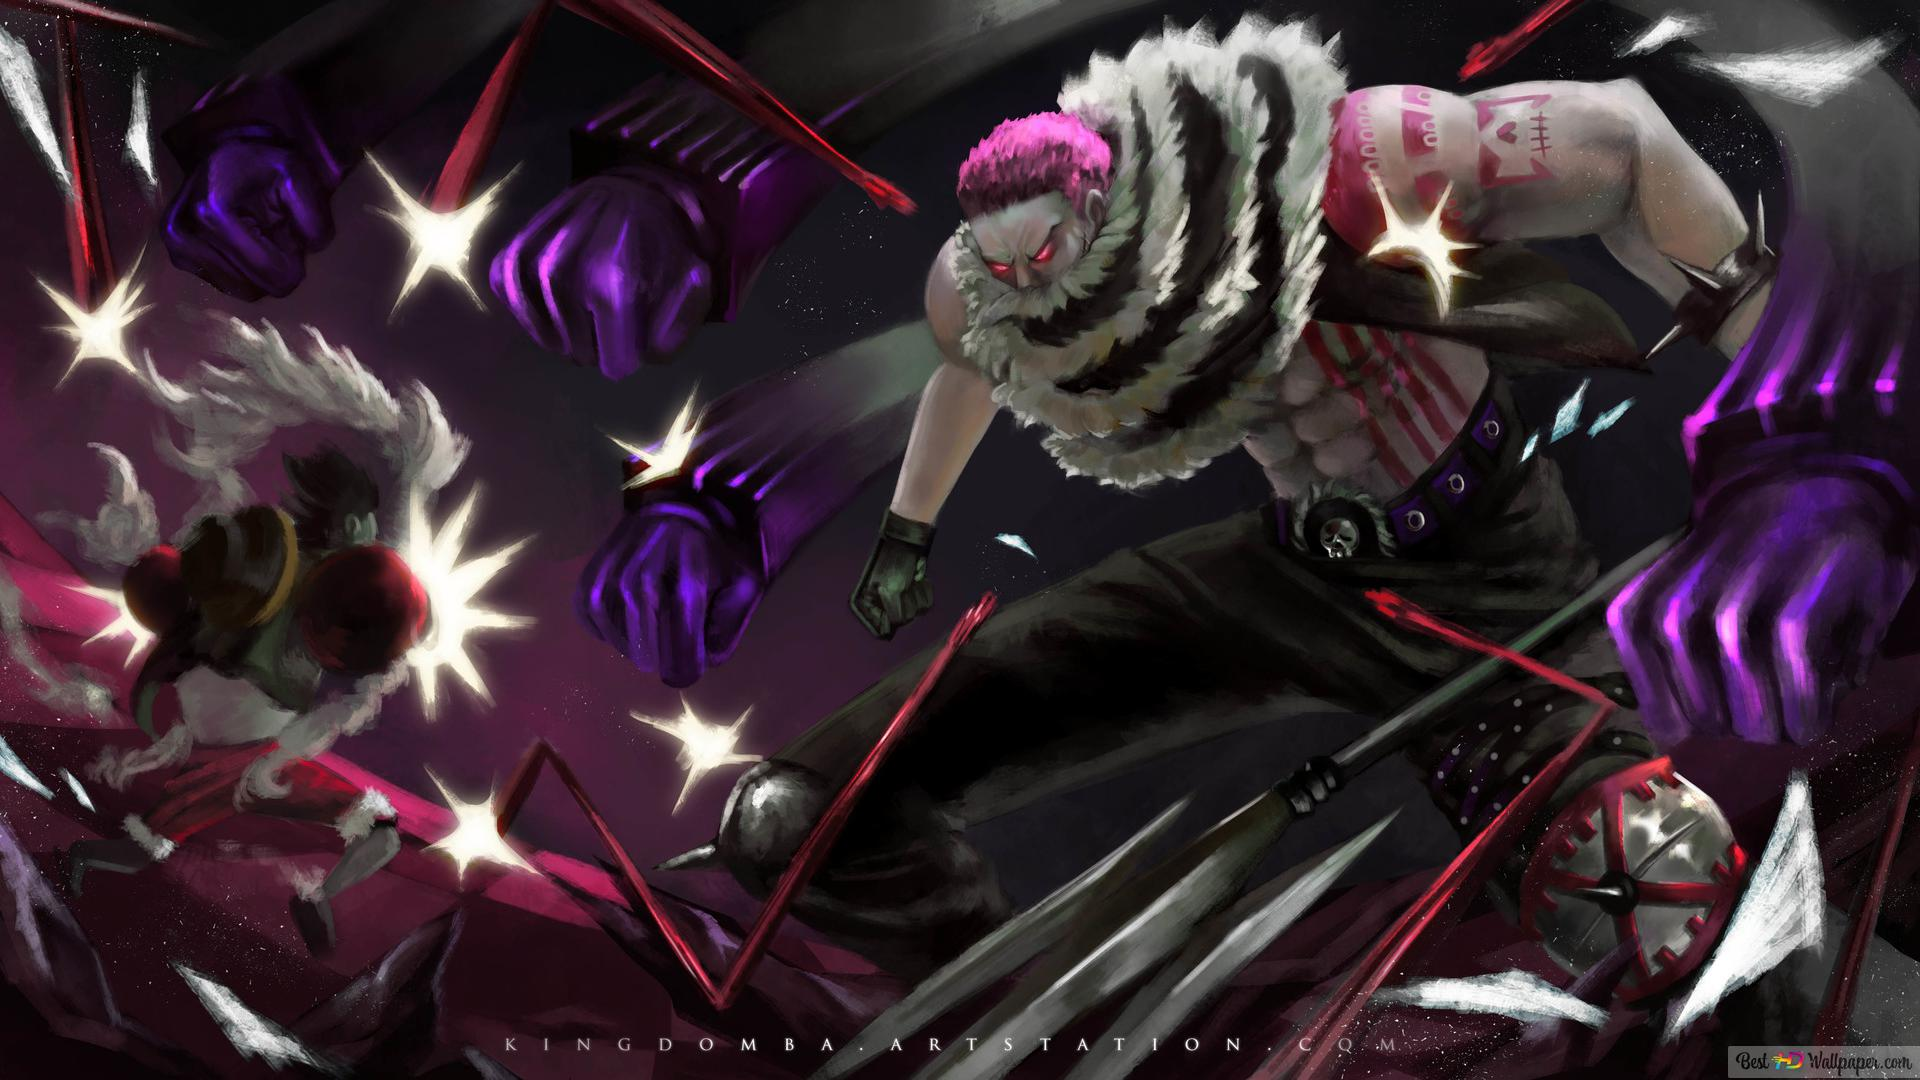 One Piece Monkey D Luffy Vs Charlotte Katakuri Hd